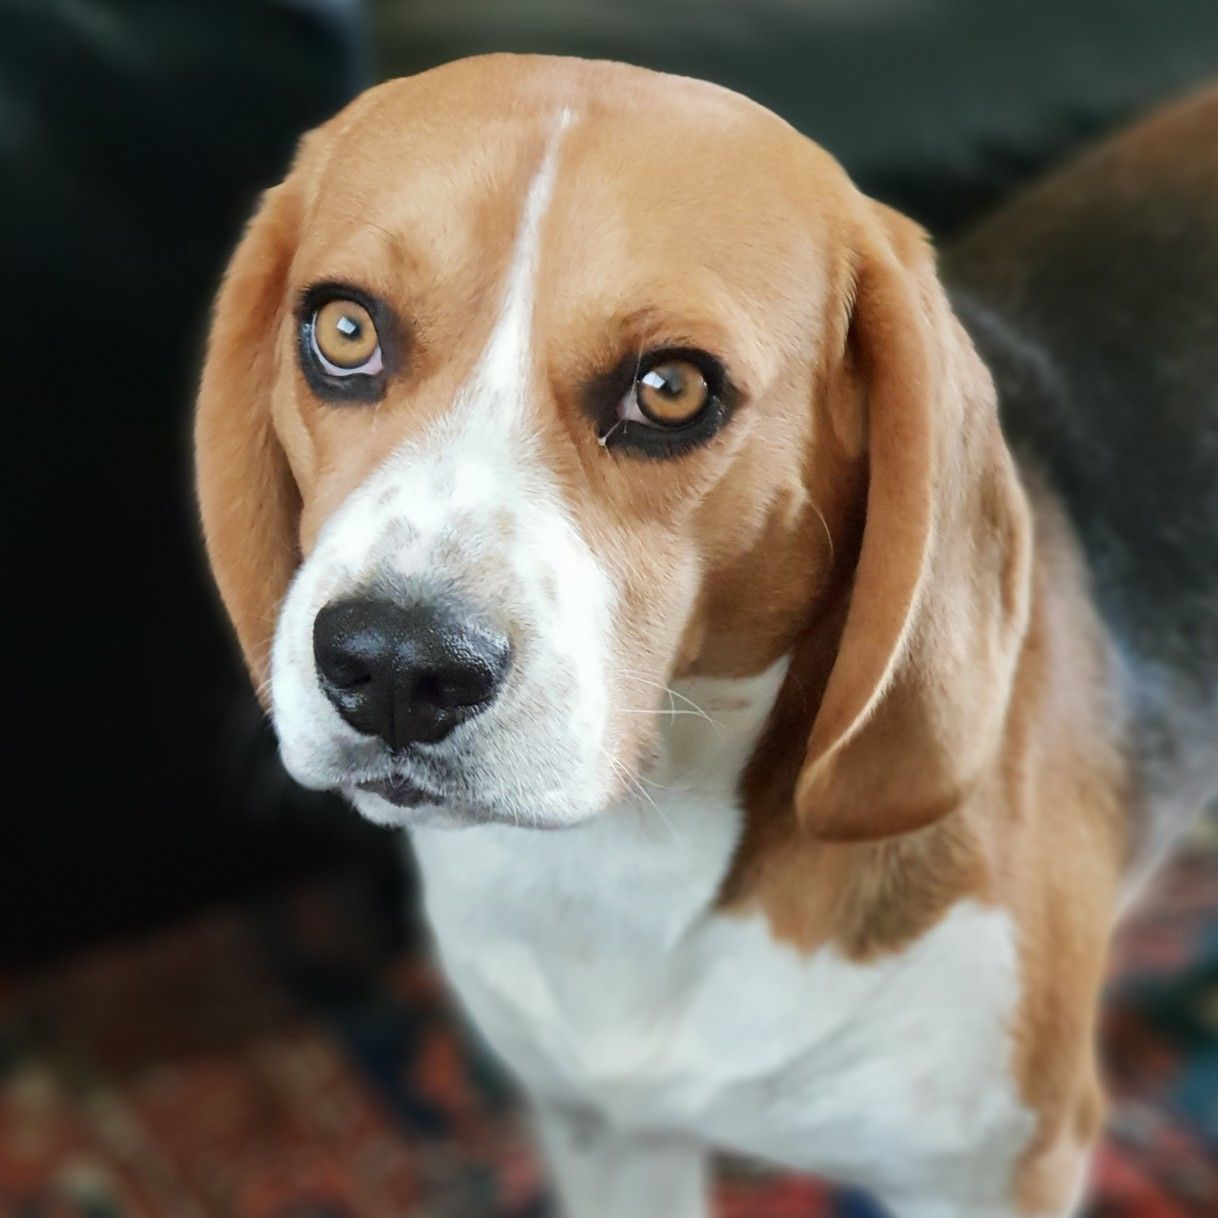 Pin By Design Gumbo On Beagles Mostly Beagle Art Baby Beagle